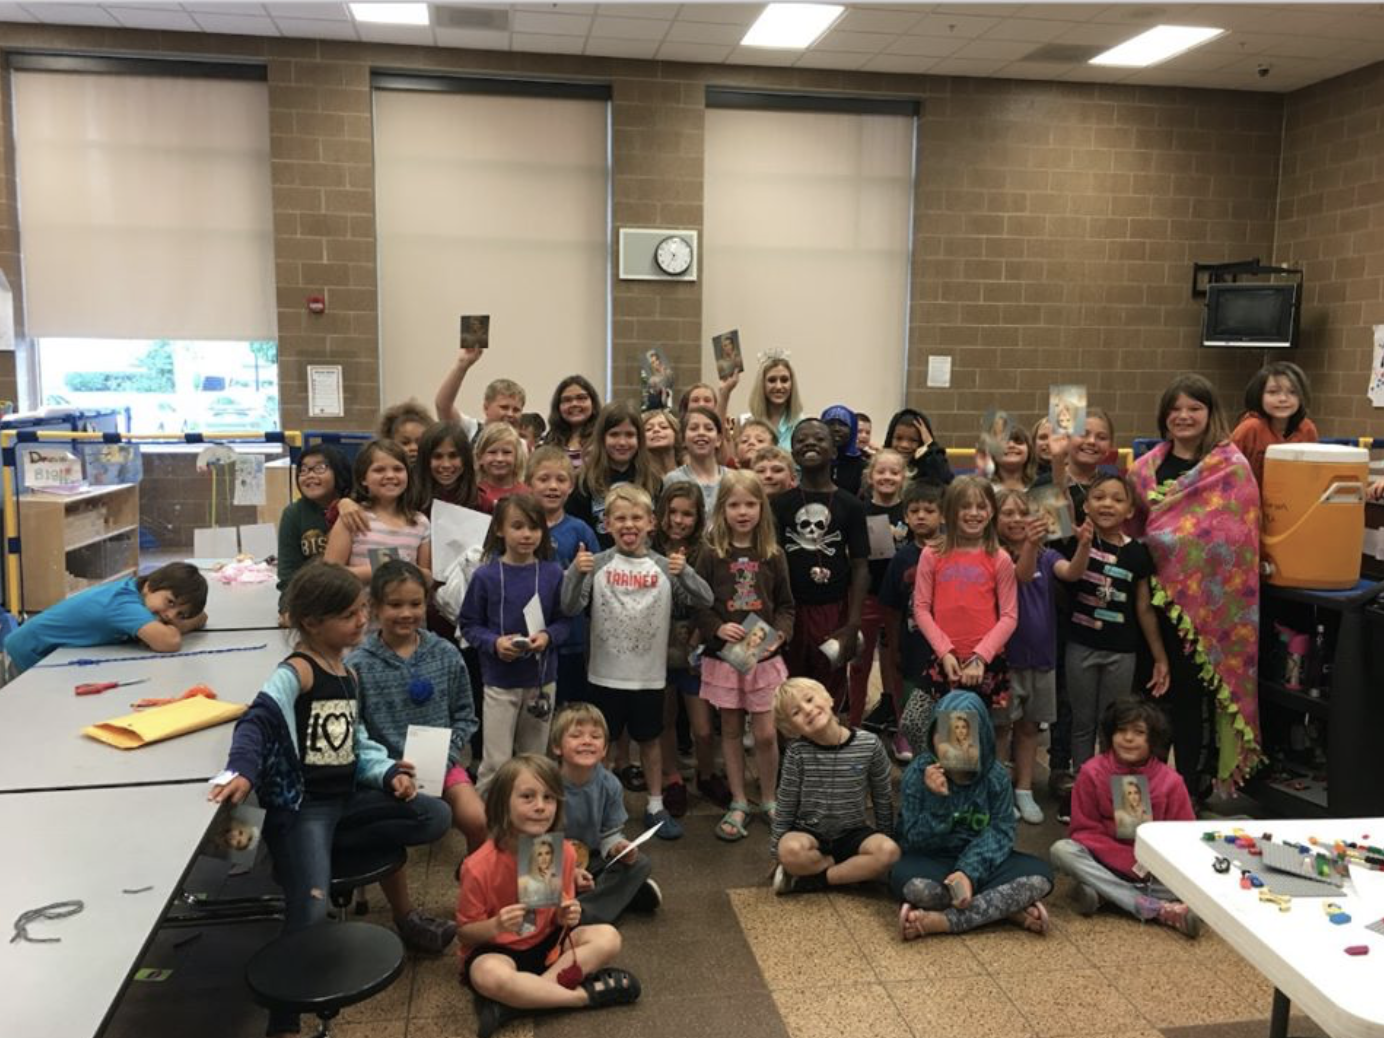 I shared my Hearts for Hope presentations with the YMCA summer group at Jefferson Elementary school! We discussed The Peyton Heart Project and made hearts.